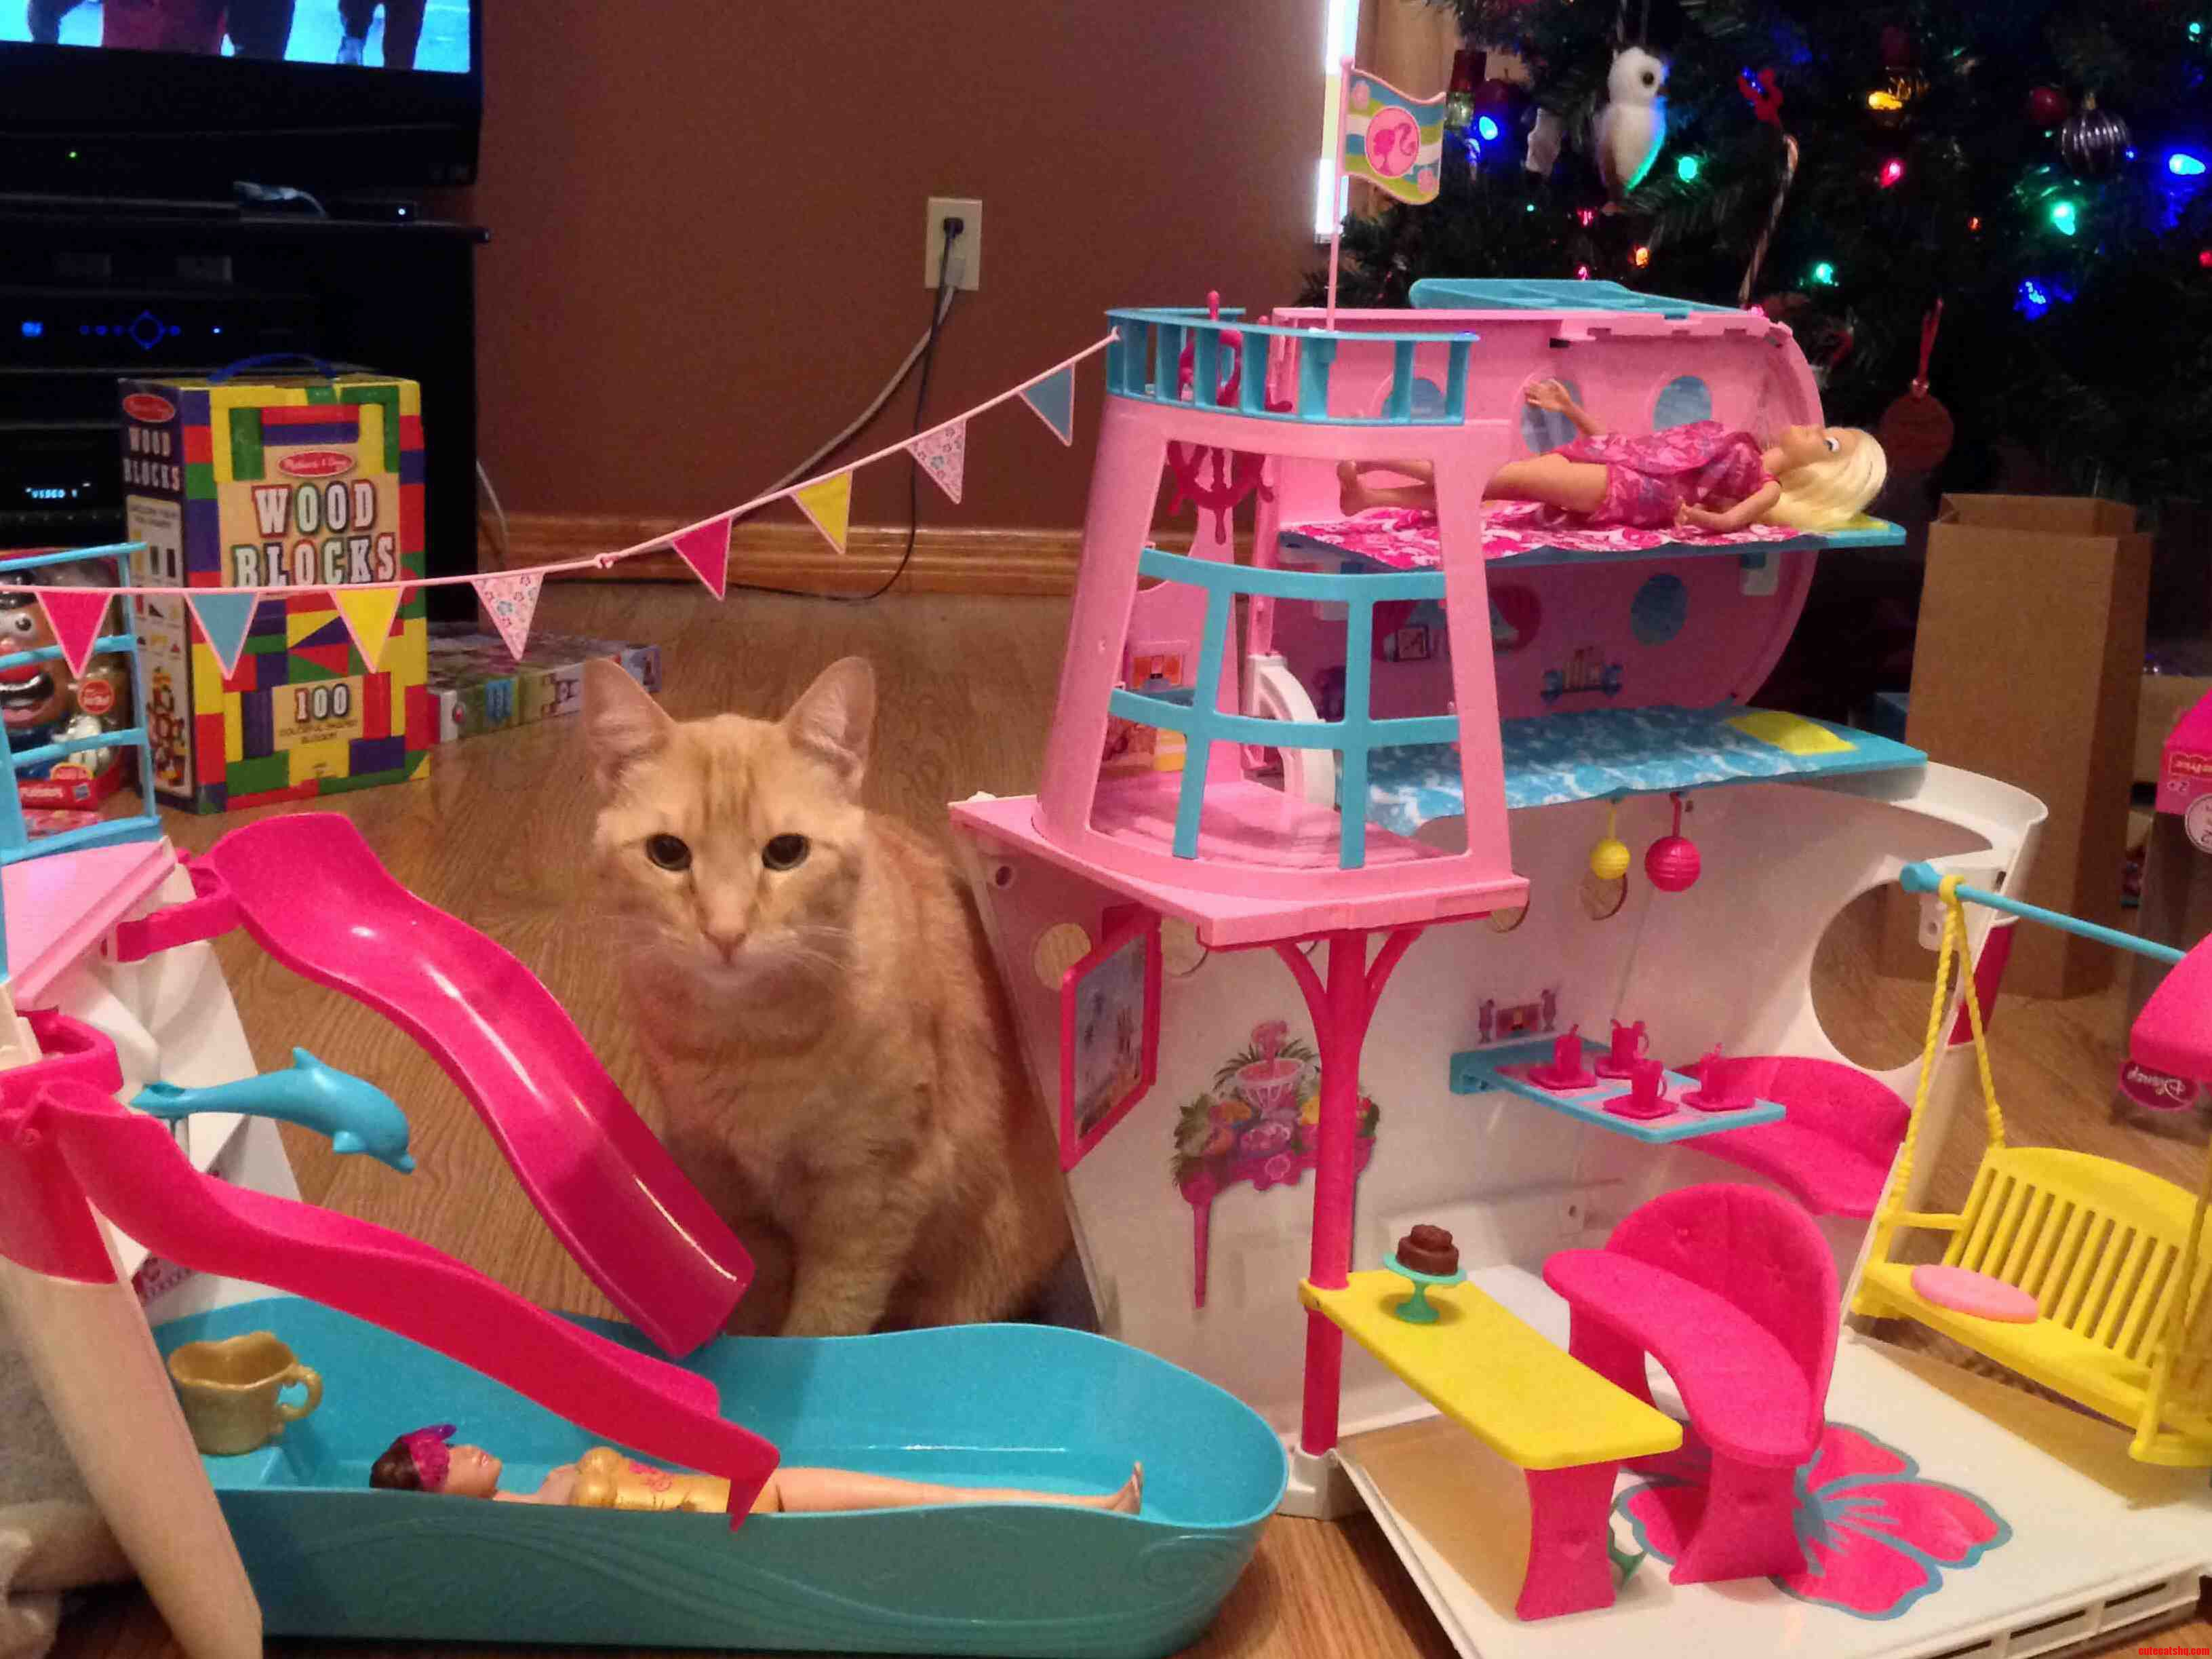 Tiger Is Having More Fun Playing With Barbies Cruise Ship Than His 6 Year Old Human.